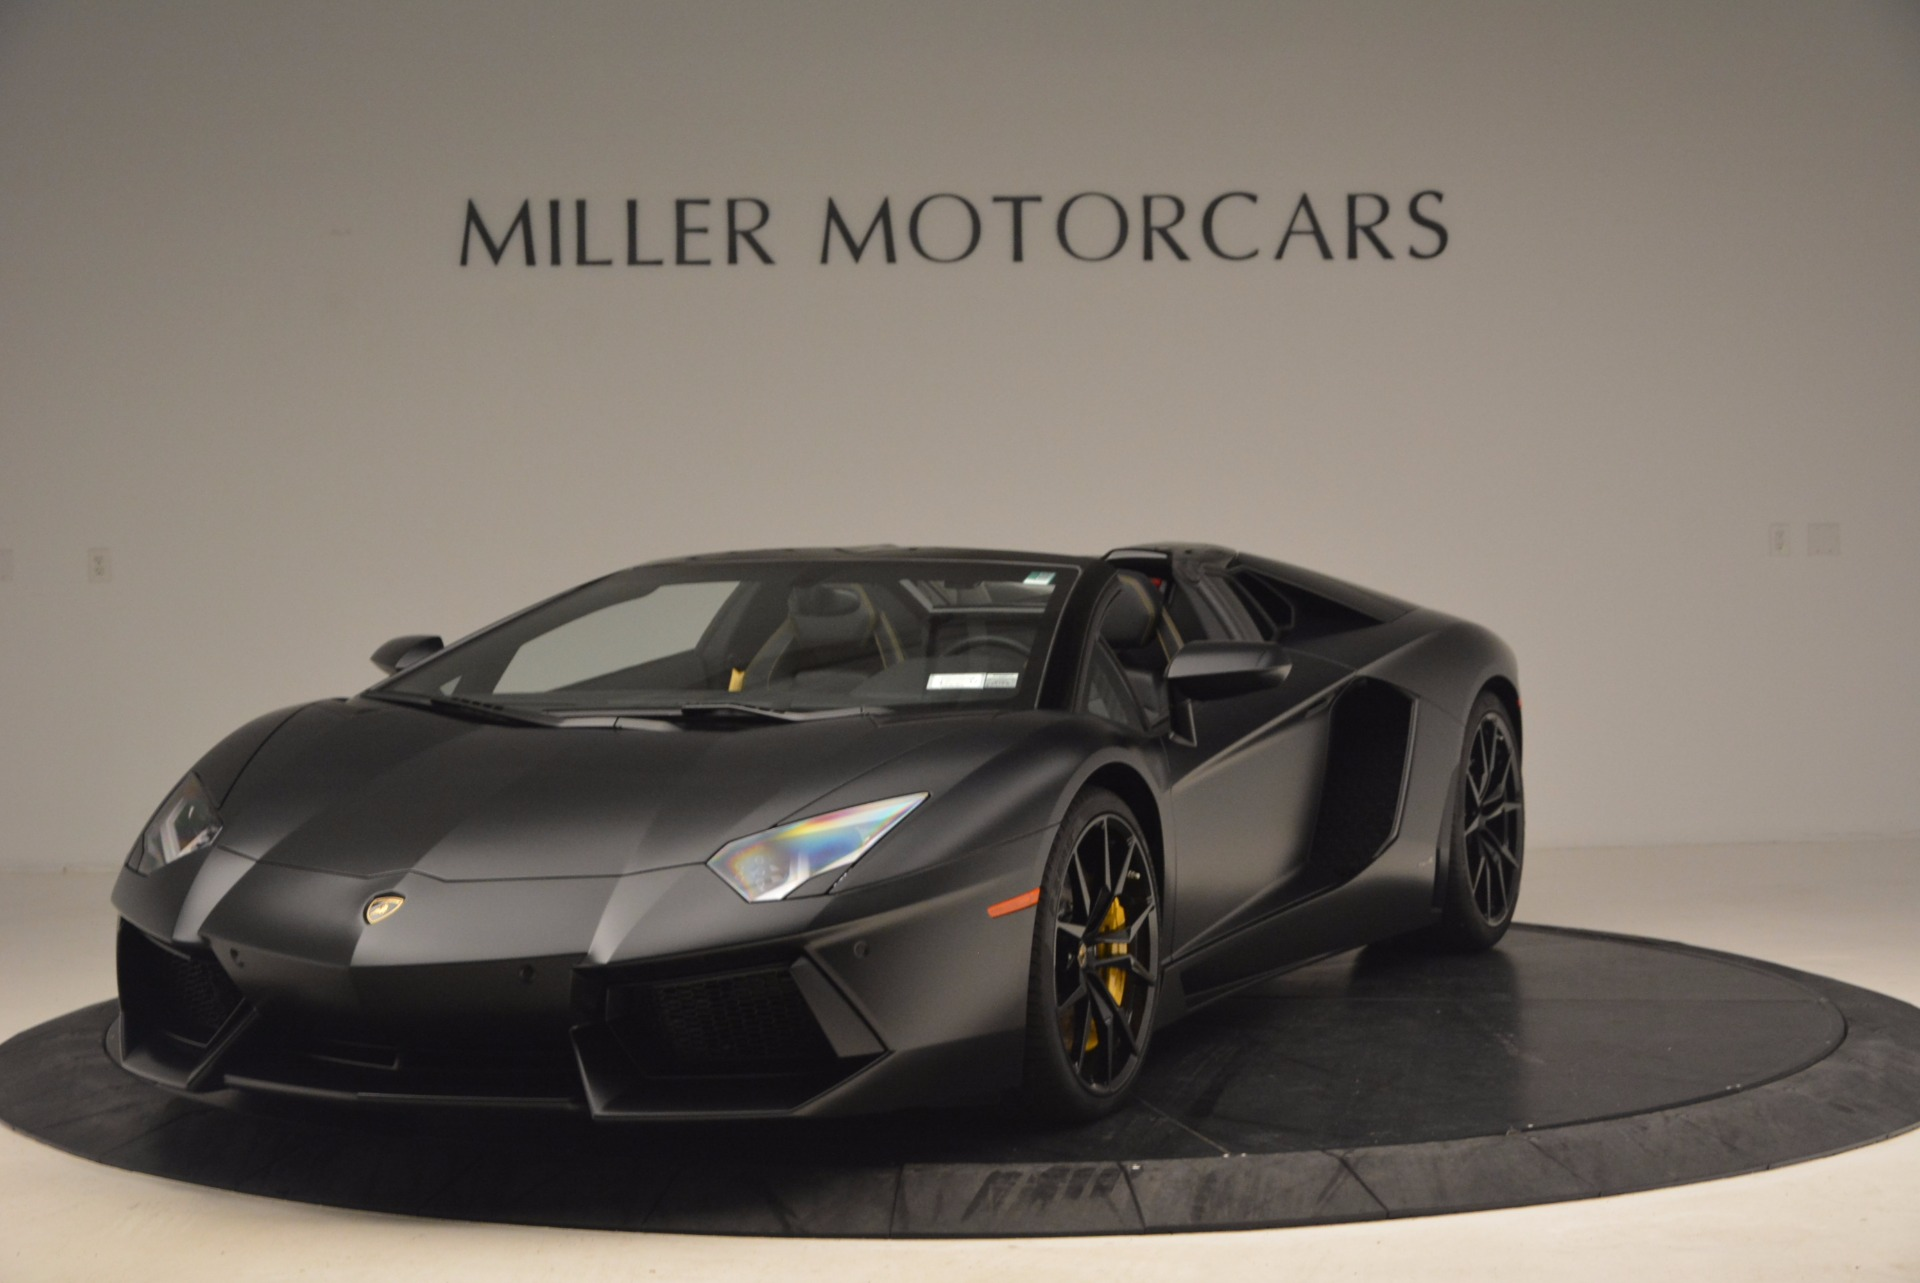 Used 2015 Lamborghini Aventador LP 700-4 for sale Sold at Bugatti of Greenwich in Greenwich CT 06830 1